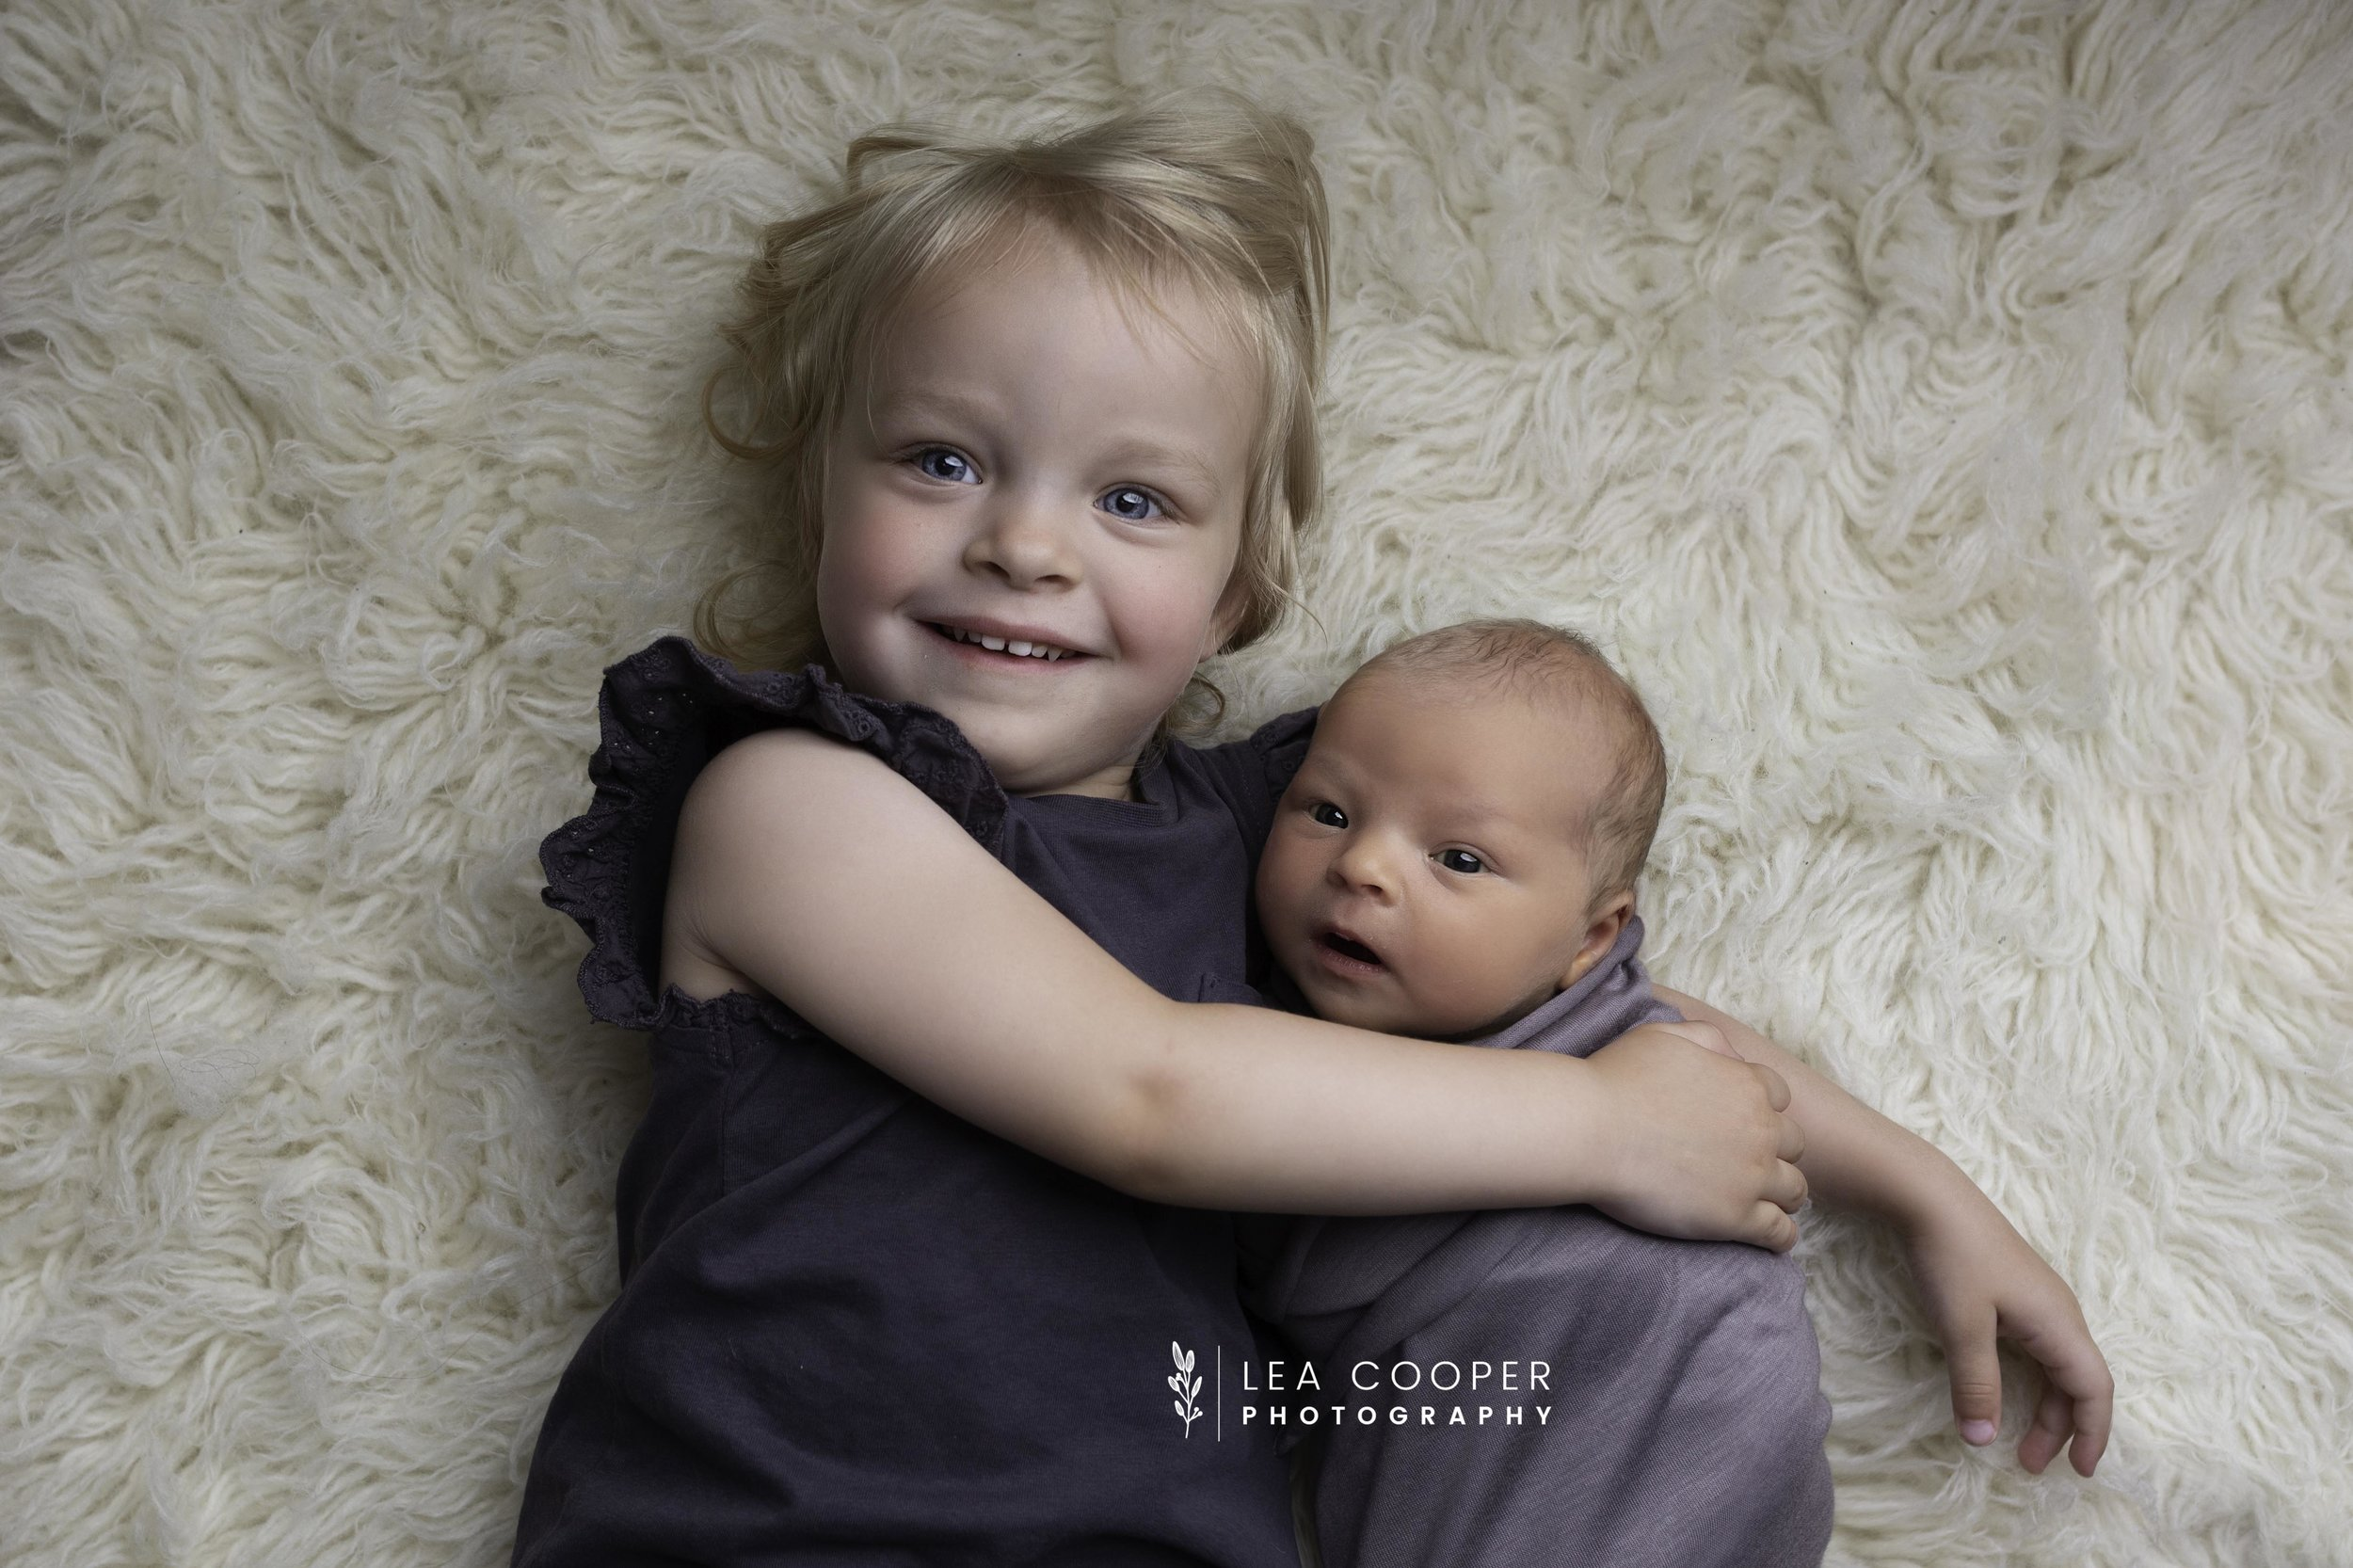 Lea-cooper-photography-childrens-photographer-portrait-newborn-photography-session-baby-family-session-photos-willenhall-wolverahmpton-birmingham-west-midlands-uk-4.jpg